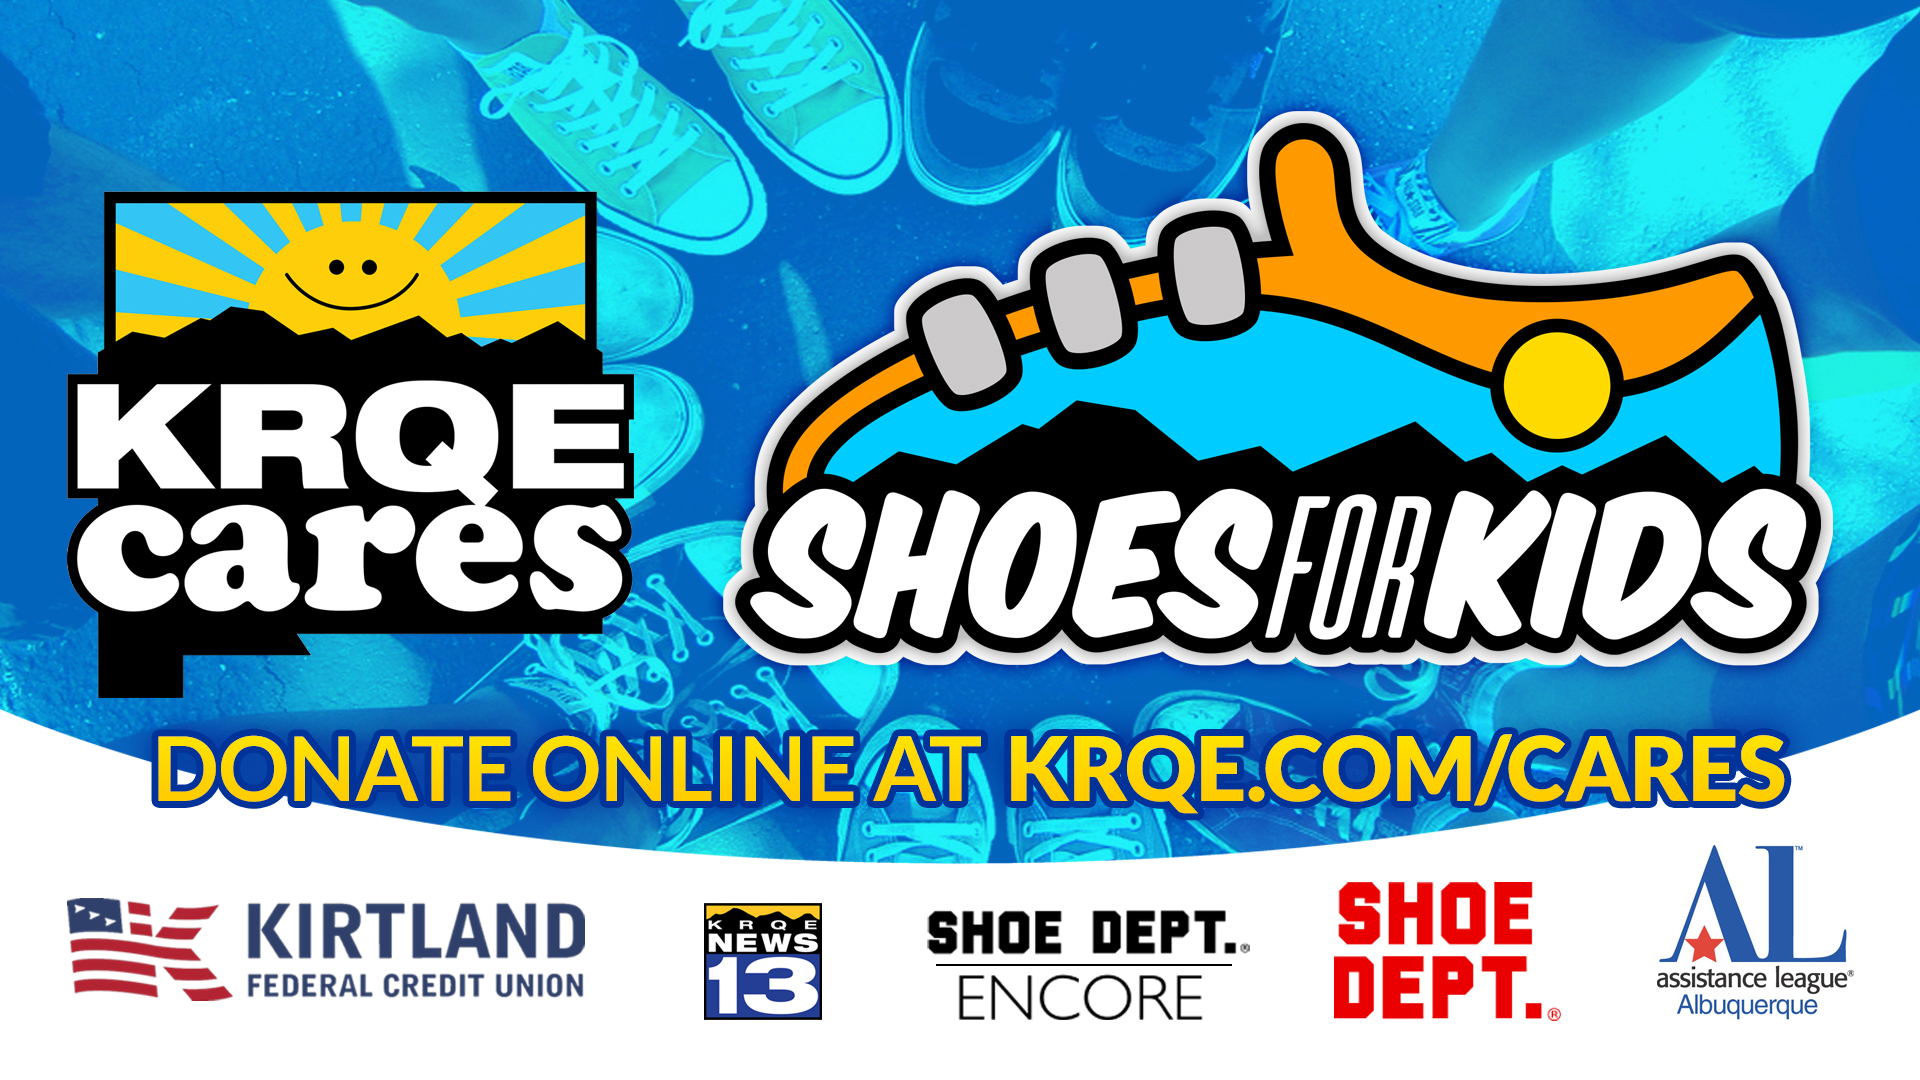 KRQE Cares Shoes for Kids | KRQE News 13